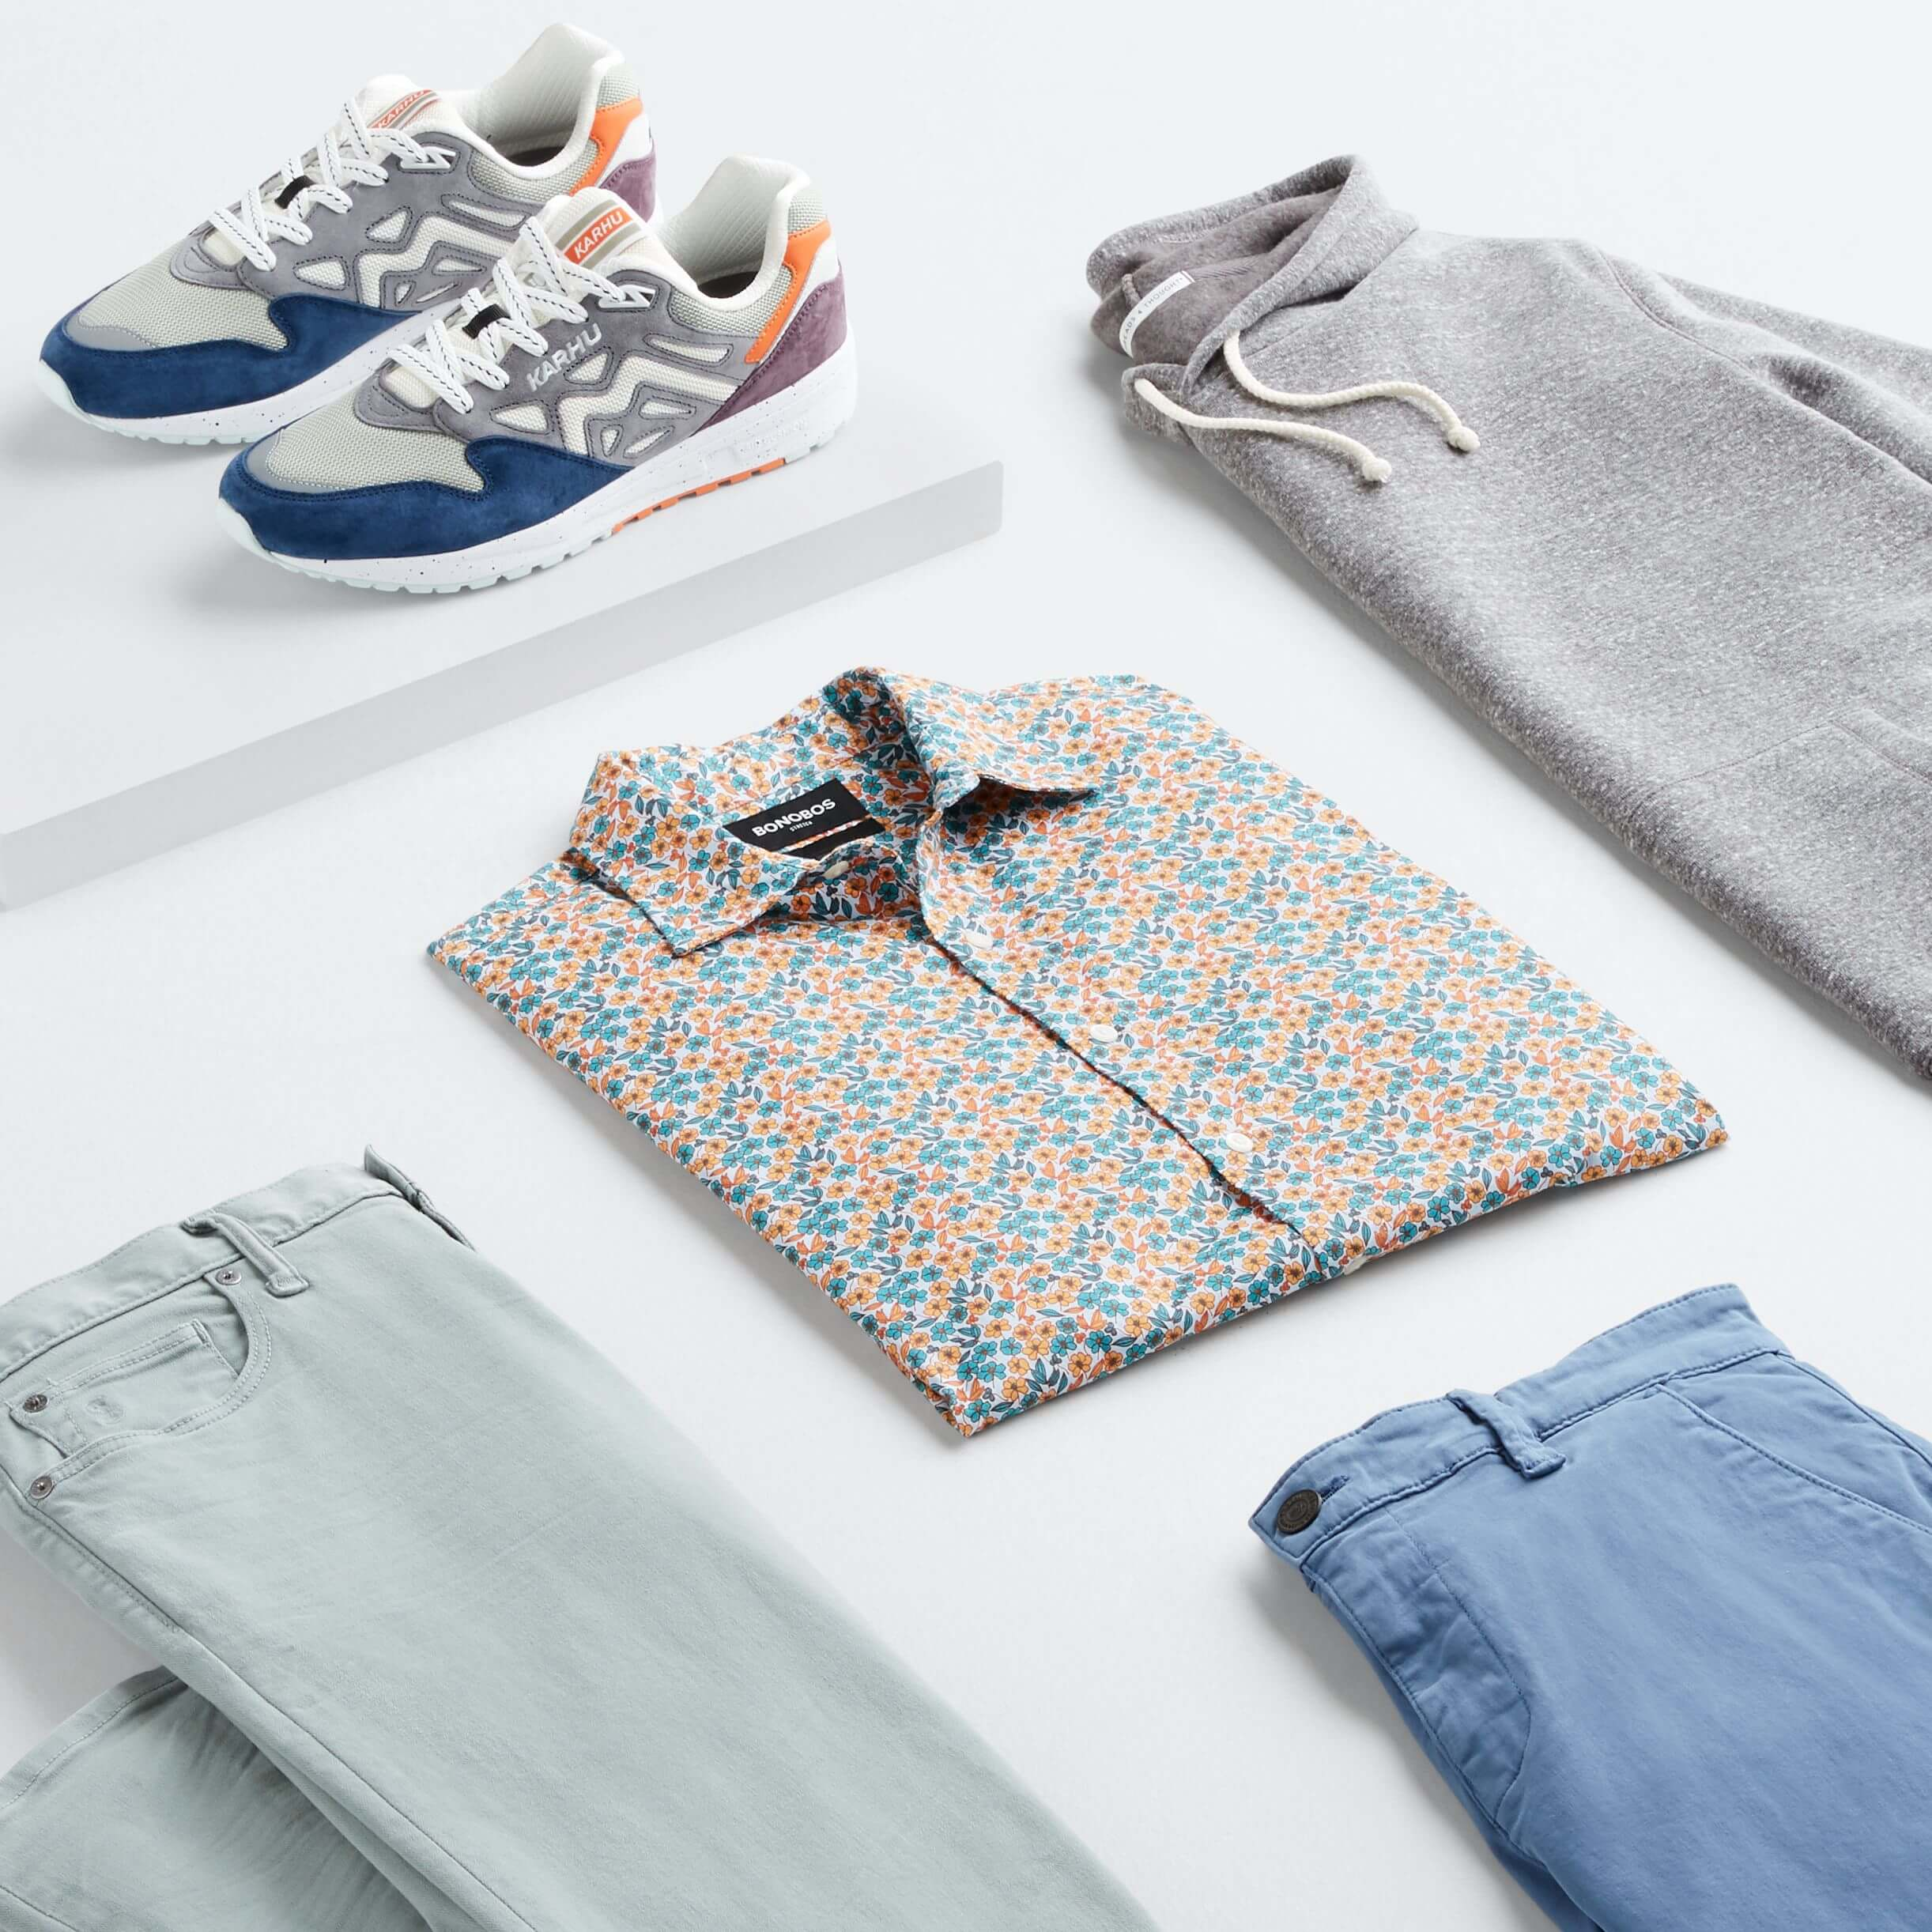 Stitch Fix Men's outfit laydown featuring an orange and blue printed button-up, light-blue pants, grey hoodie, blue shorts and multi-colored sneakers.